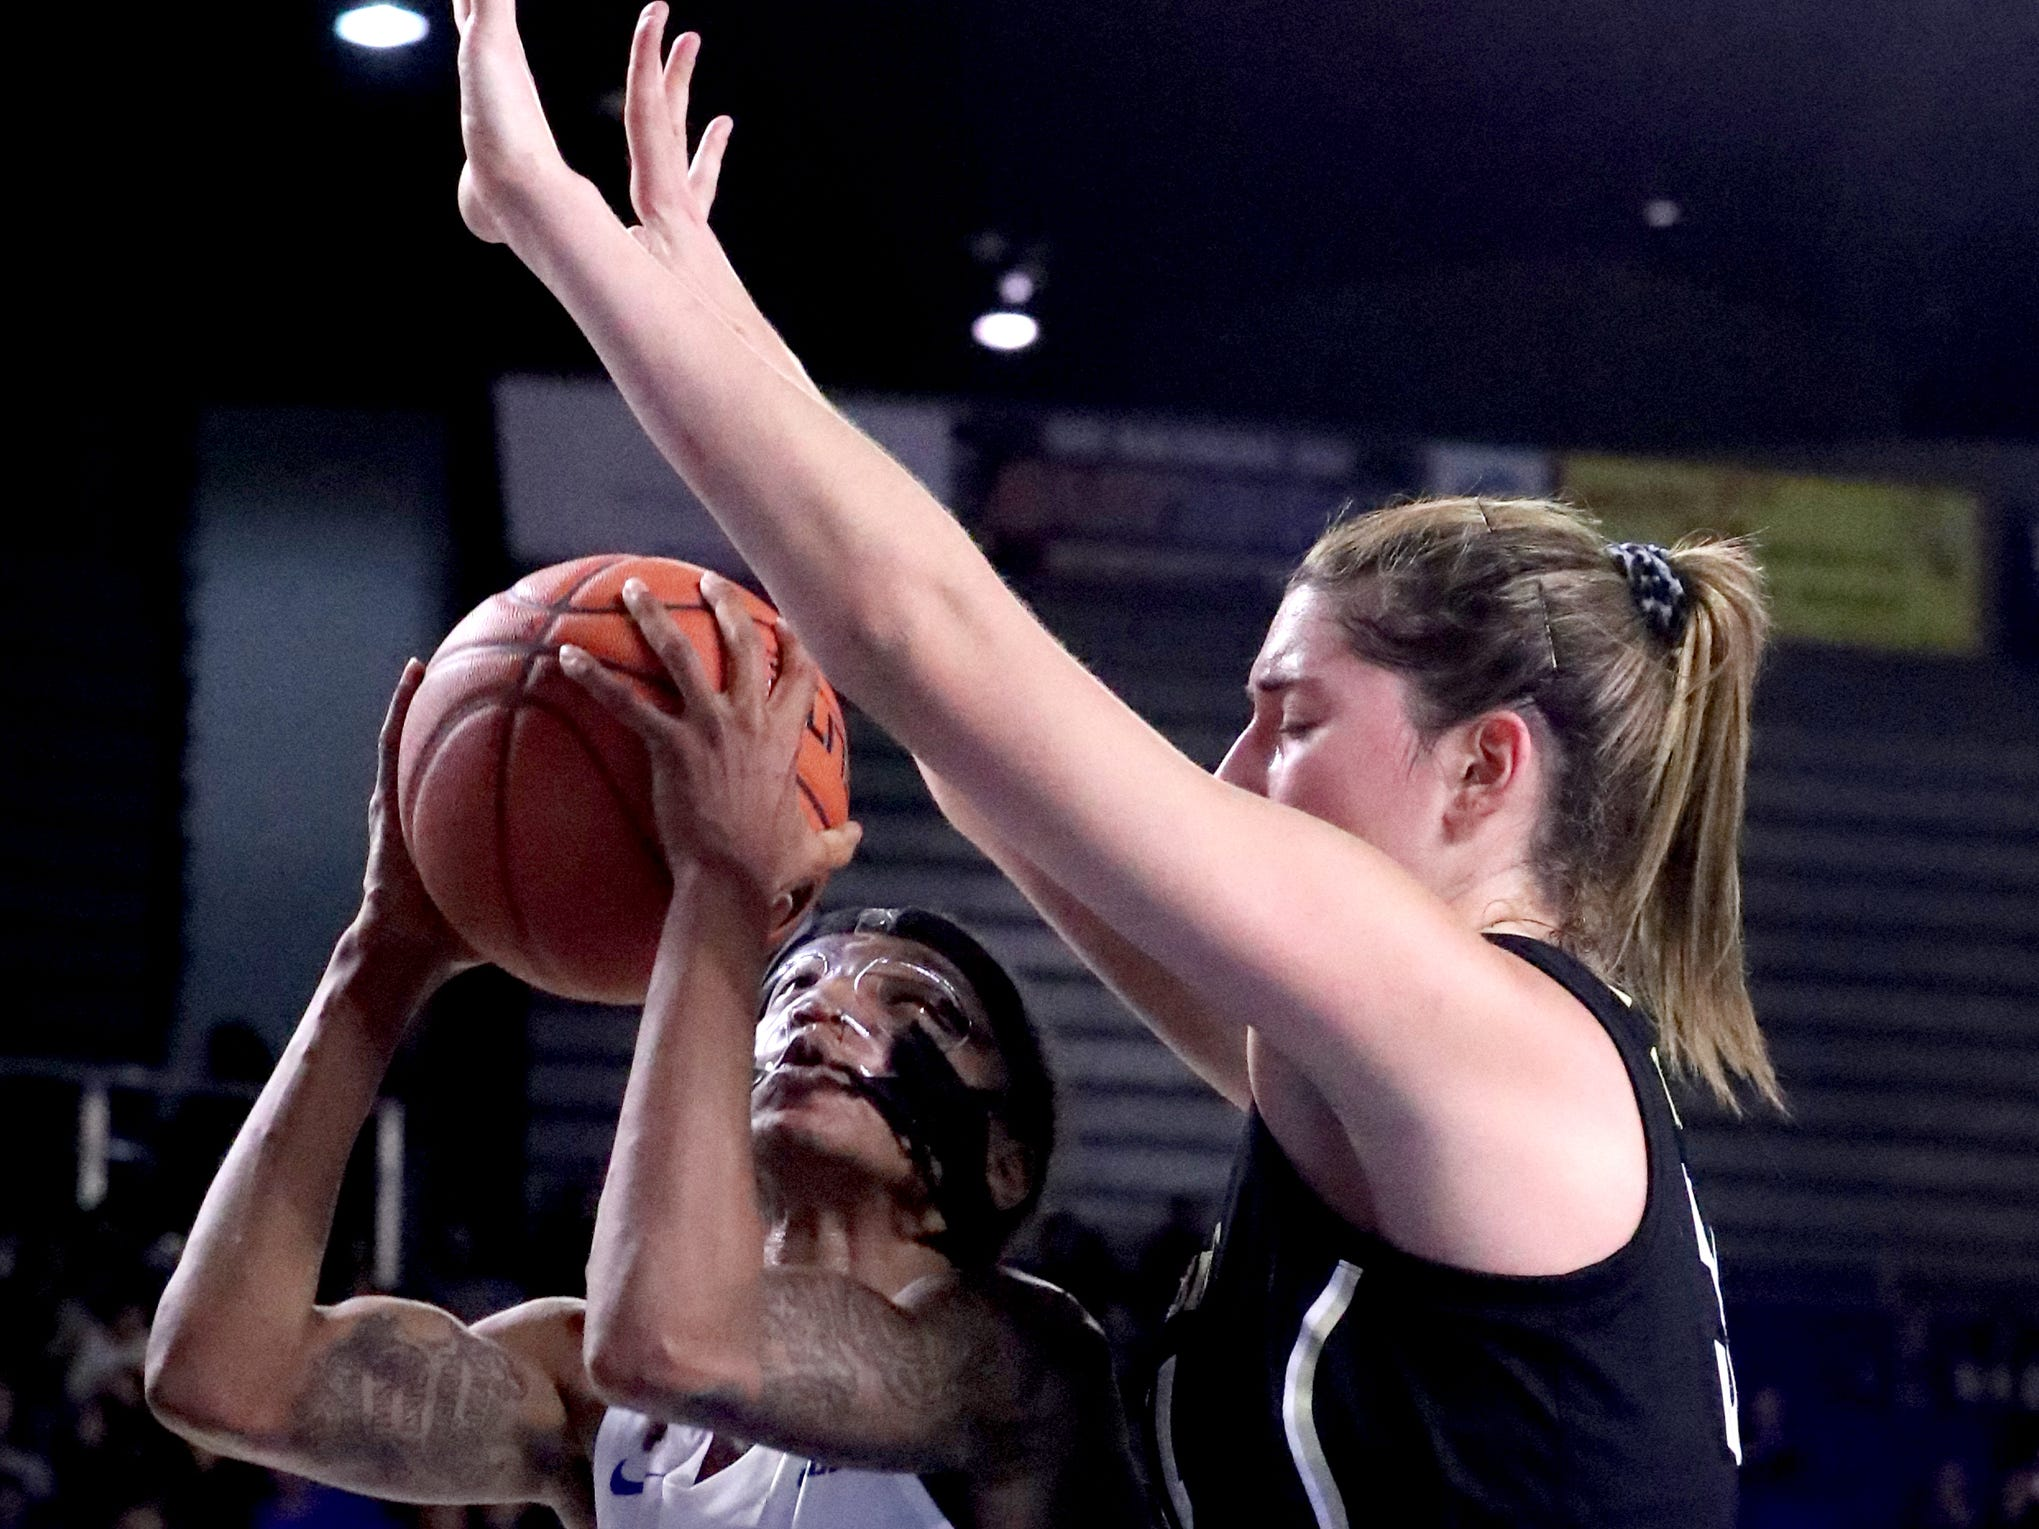 MTSU's A'Queen (1) goes up for a shot as Vanderbilt's Mariella Fasoula (34) guards her during the women's home opening game at MTSU on Friday, Nov. 8, 2018.